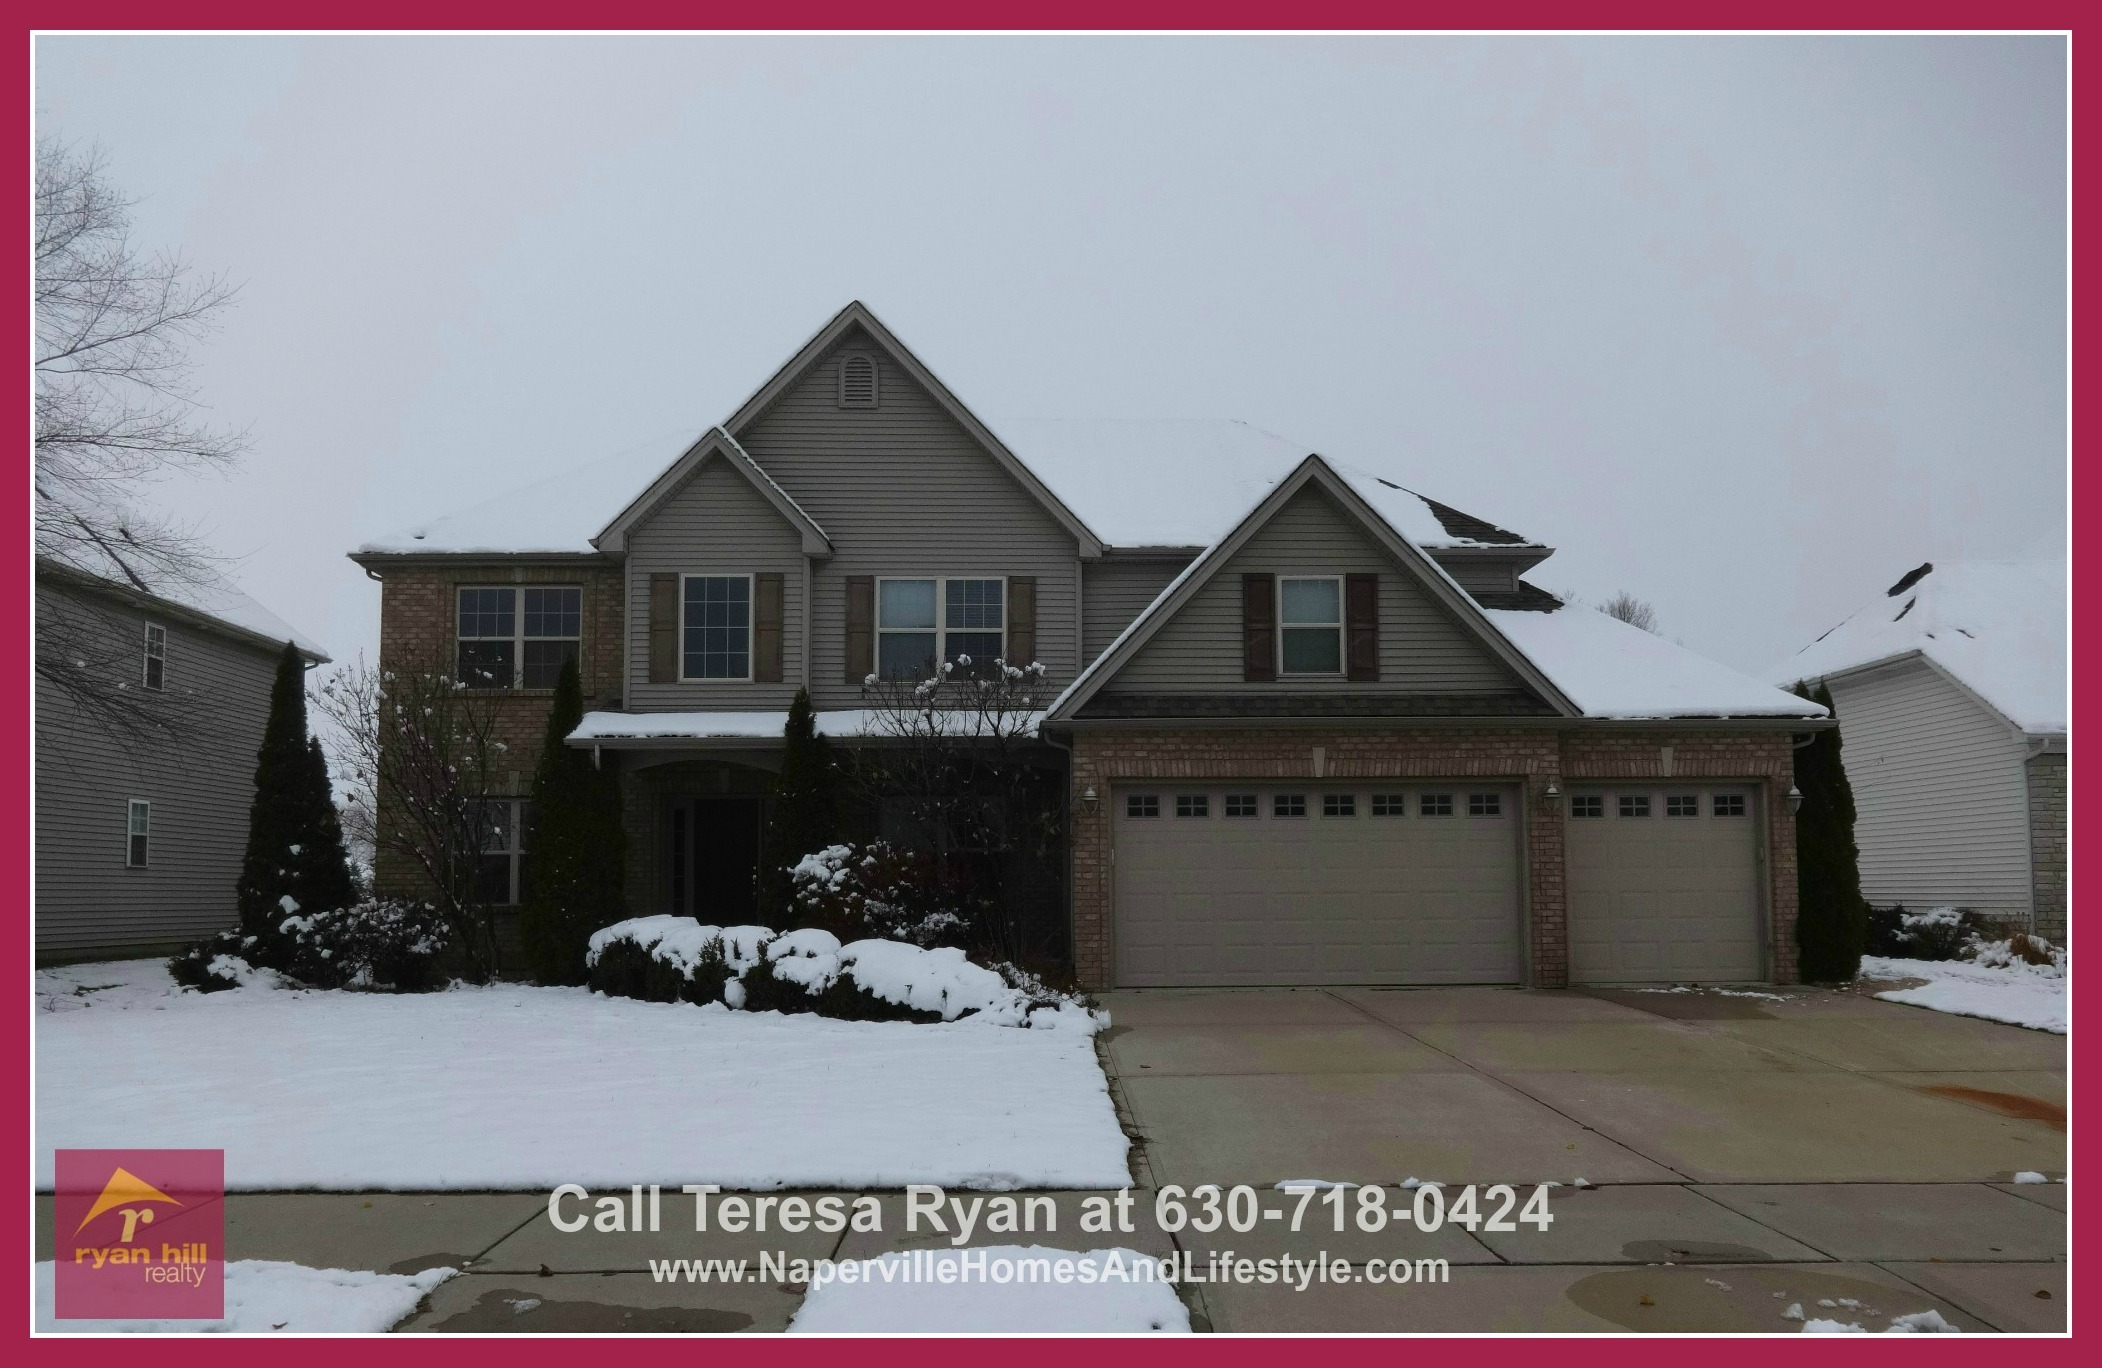 Homes for sale in Yorkville IL - Convenience and comfort are yours in this beautiful and spacious Yokville home for sale.